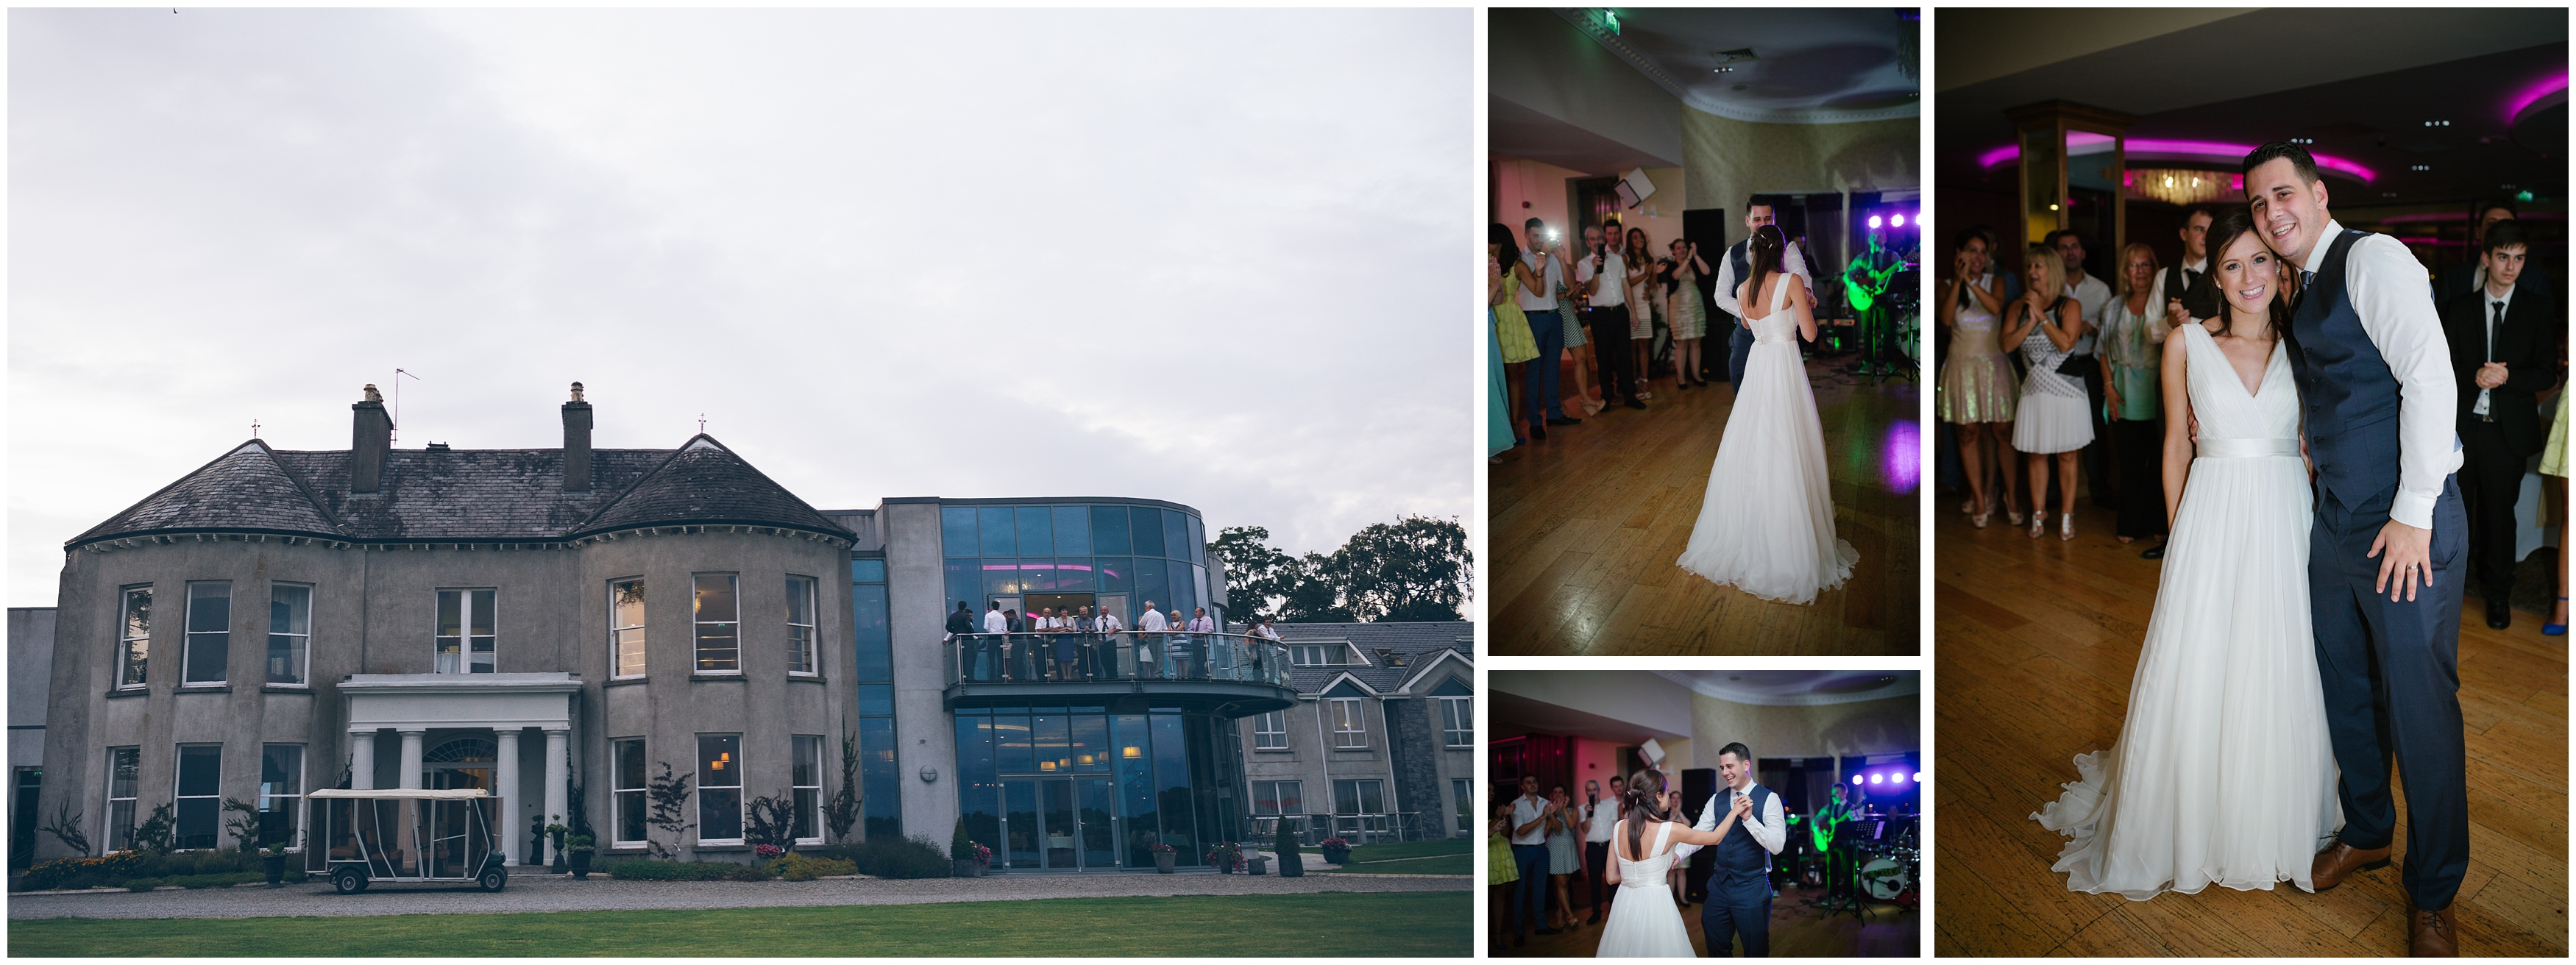 Waterford-wedding-Photographer-prices